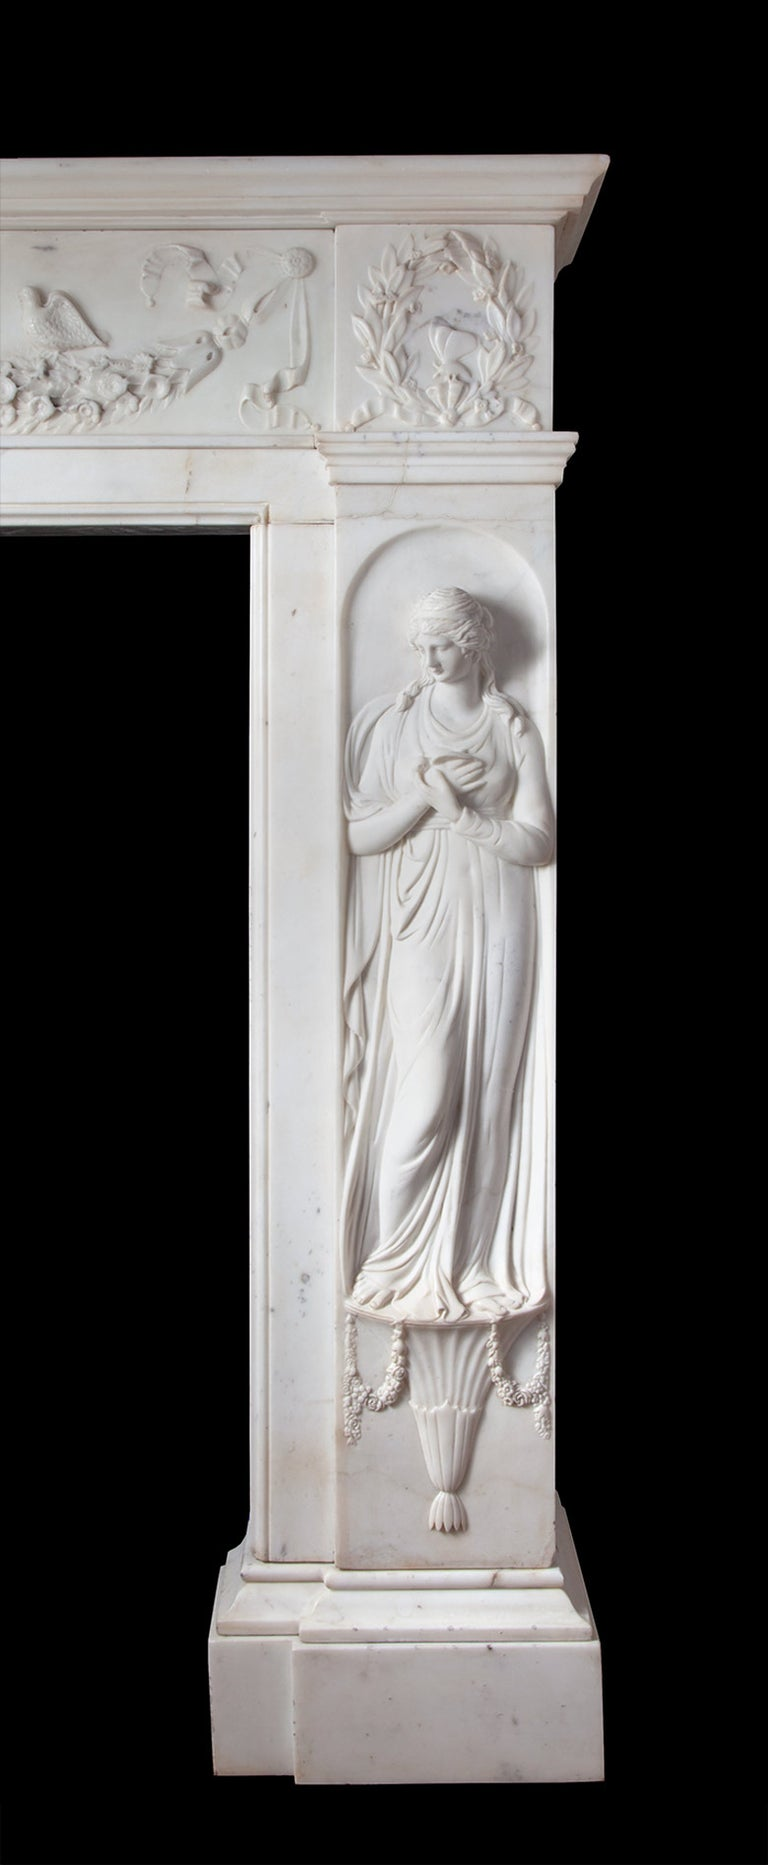 Regency Fireplace Executed in Italian Statuary Marble In Good Condition For Sale In Tyrone, Northern Ireland